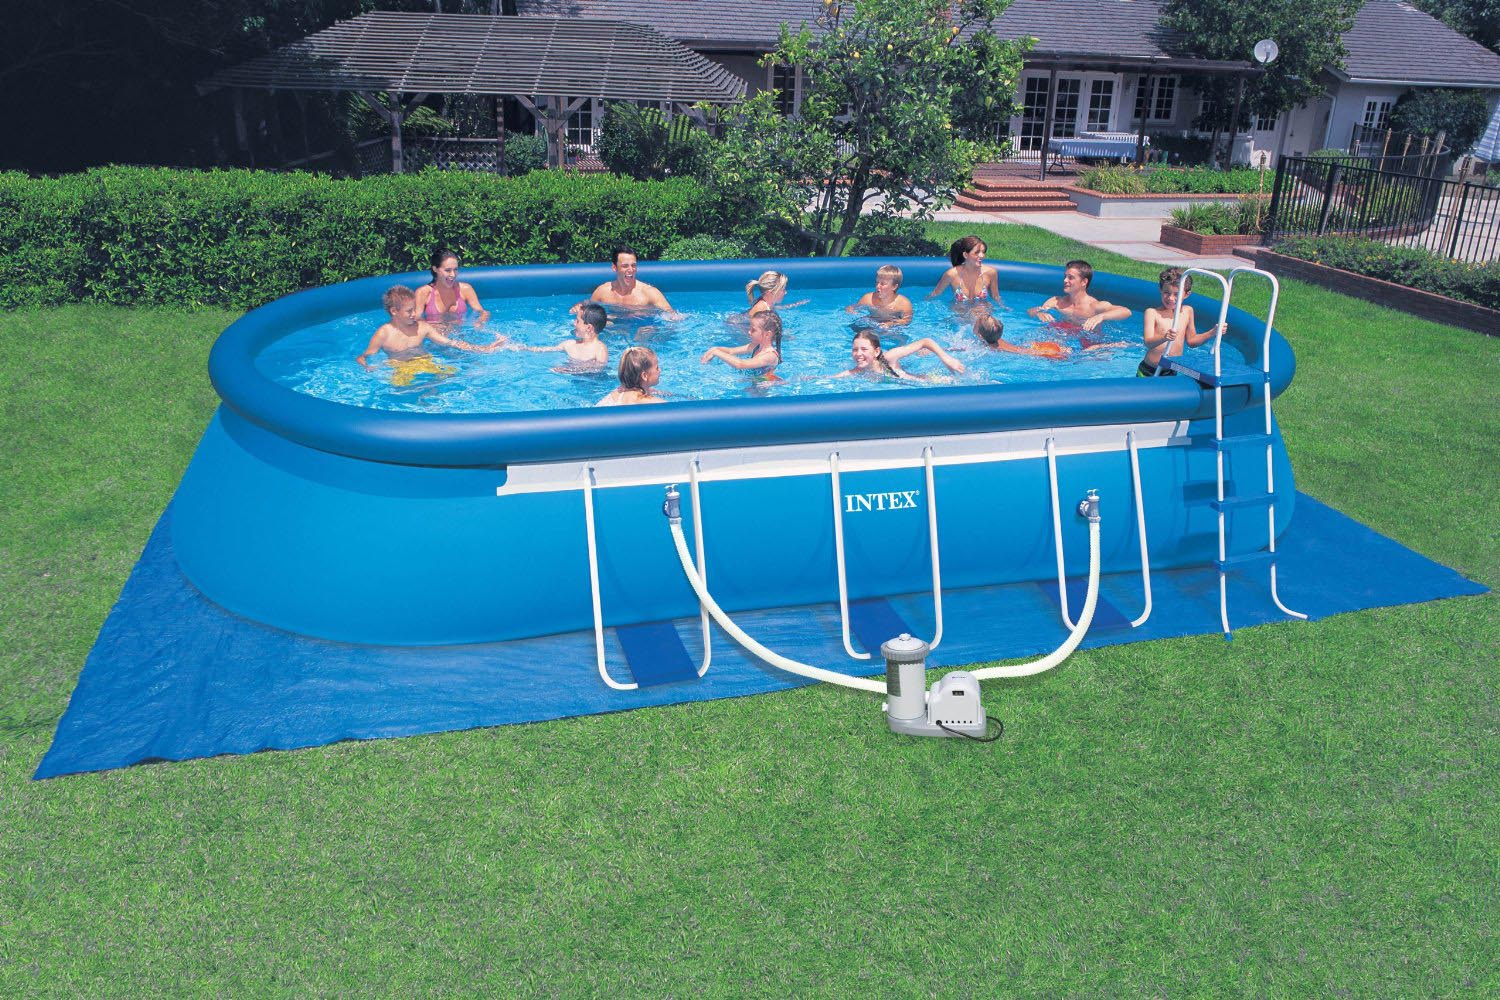 Intex Portable Swimming Pools | Backyard Design Ideas